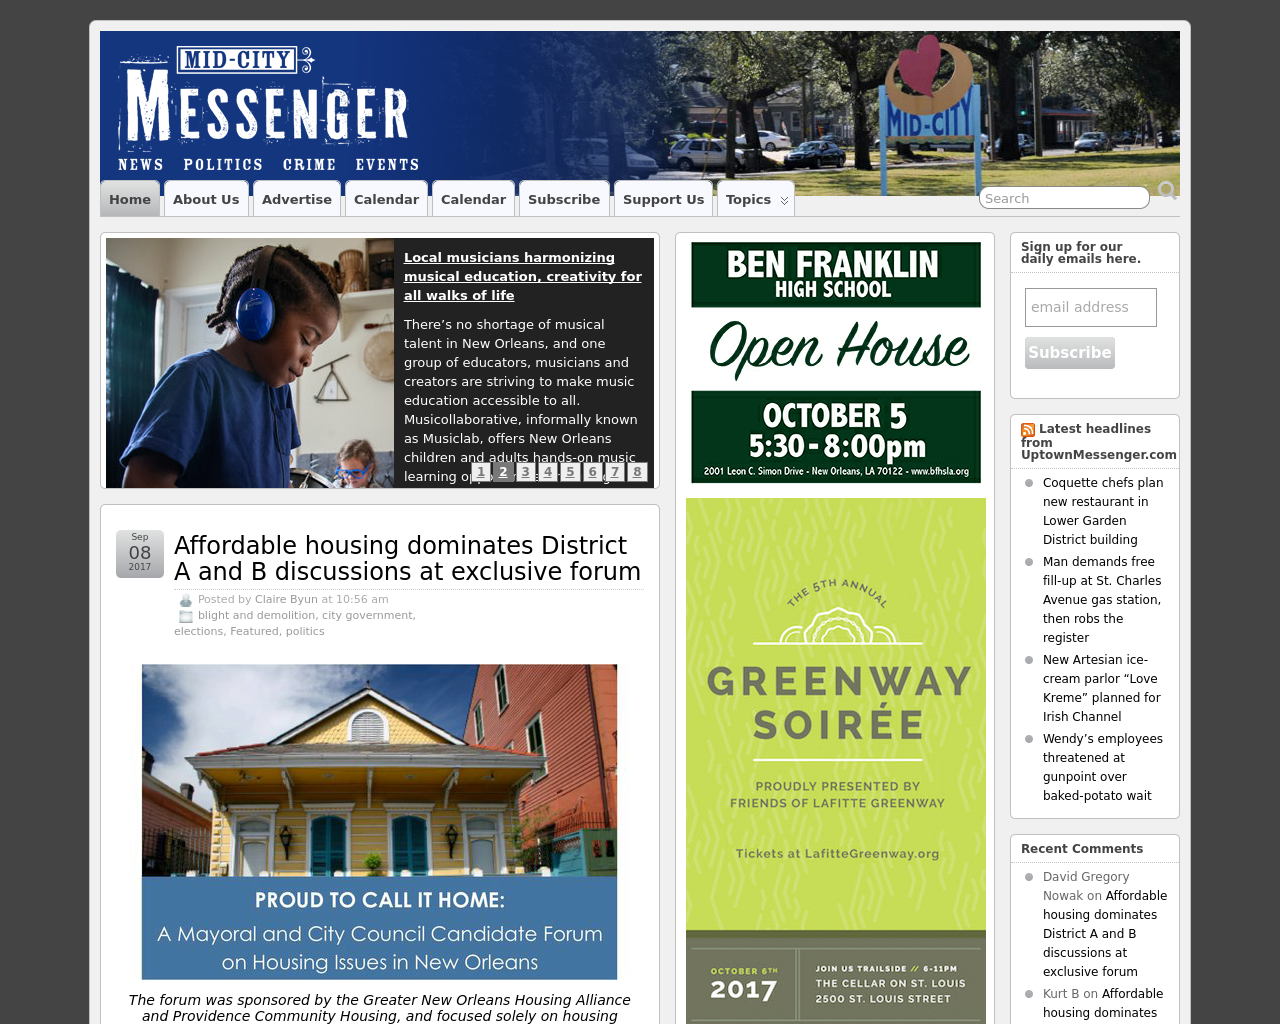 Mid-City-Messenger-Advertising-Reviews-Pricing